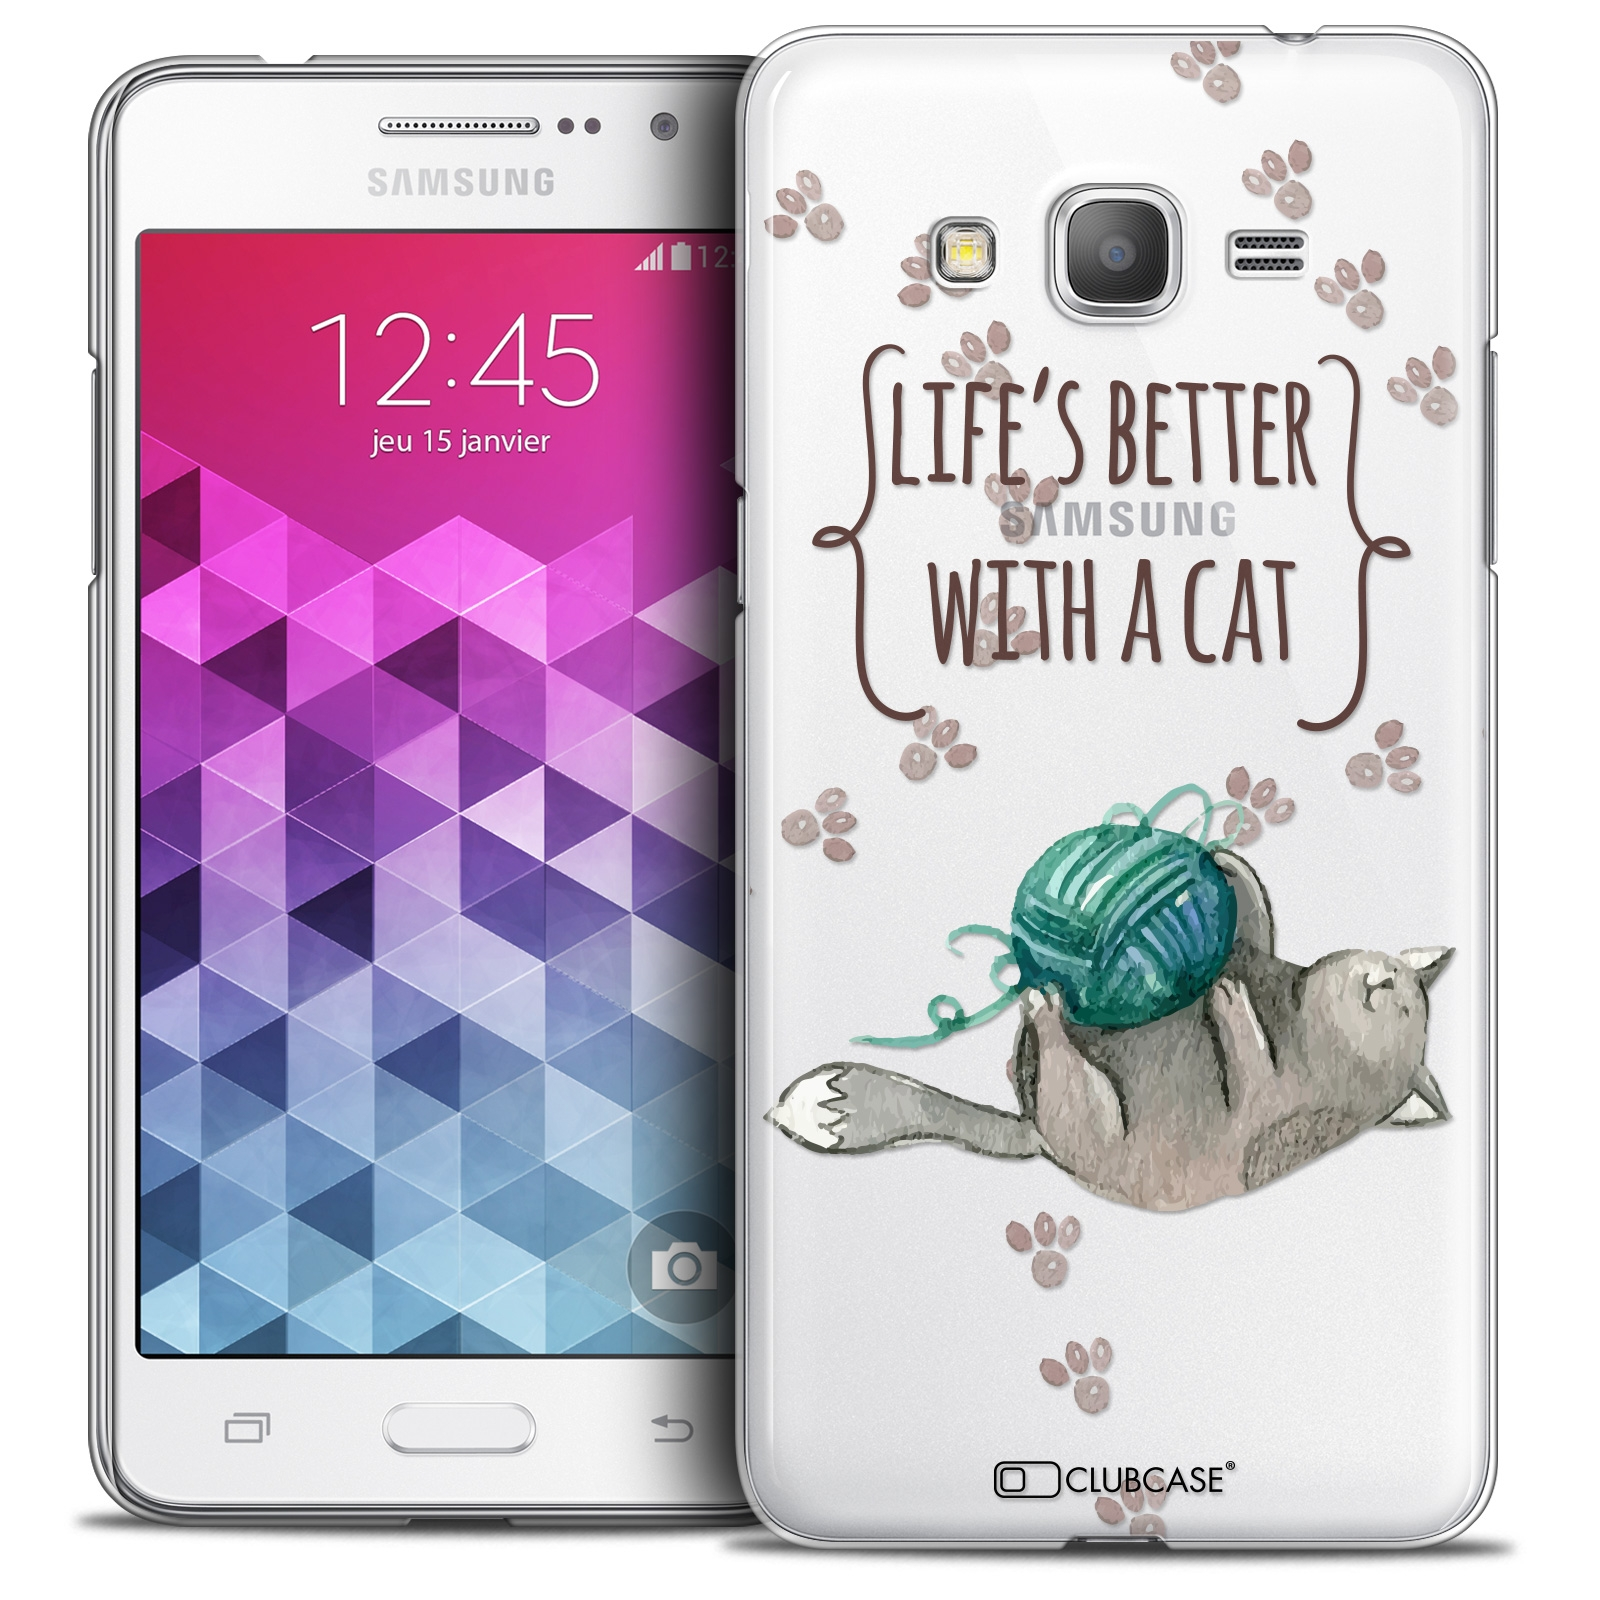 Galaxy grand quotes